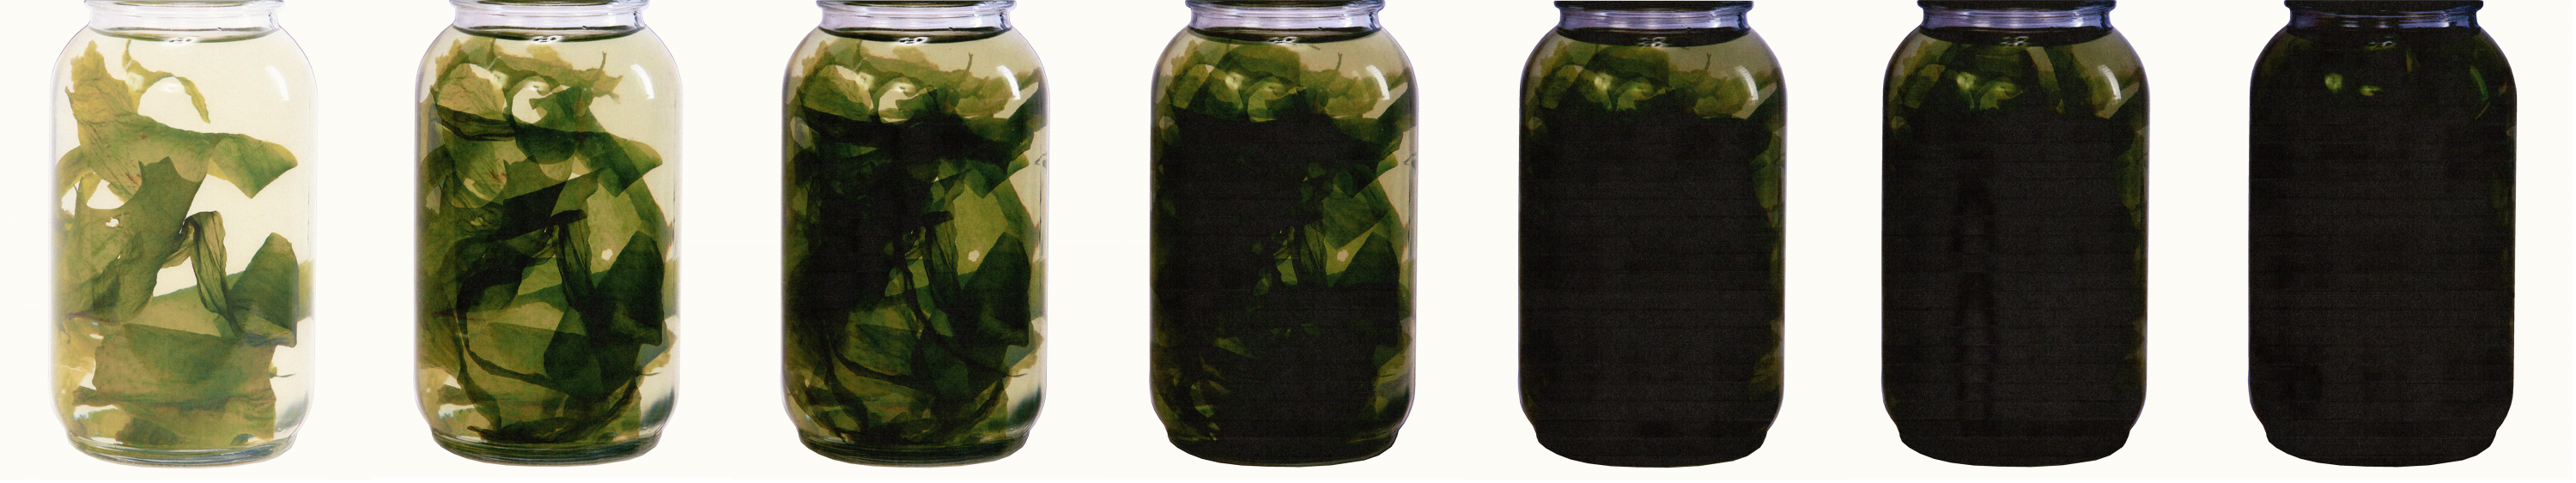 The imagery depicts consecutive jars containing wakame seaweed. Each iteration has an additional layer printed overtop.